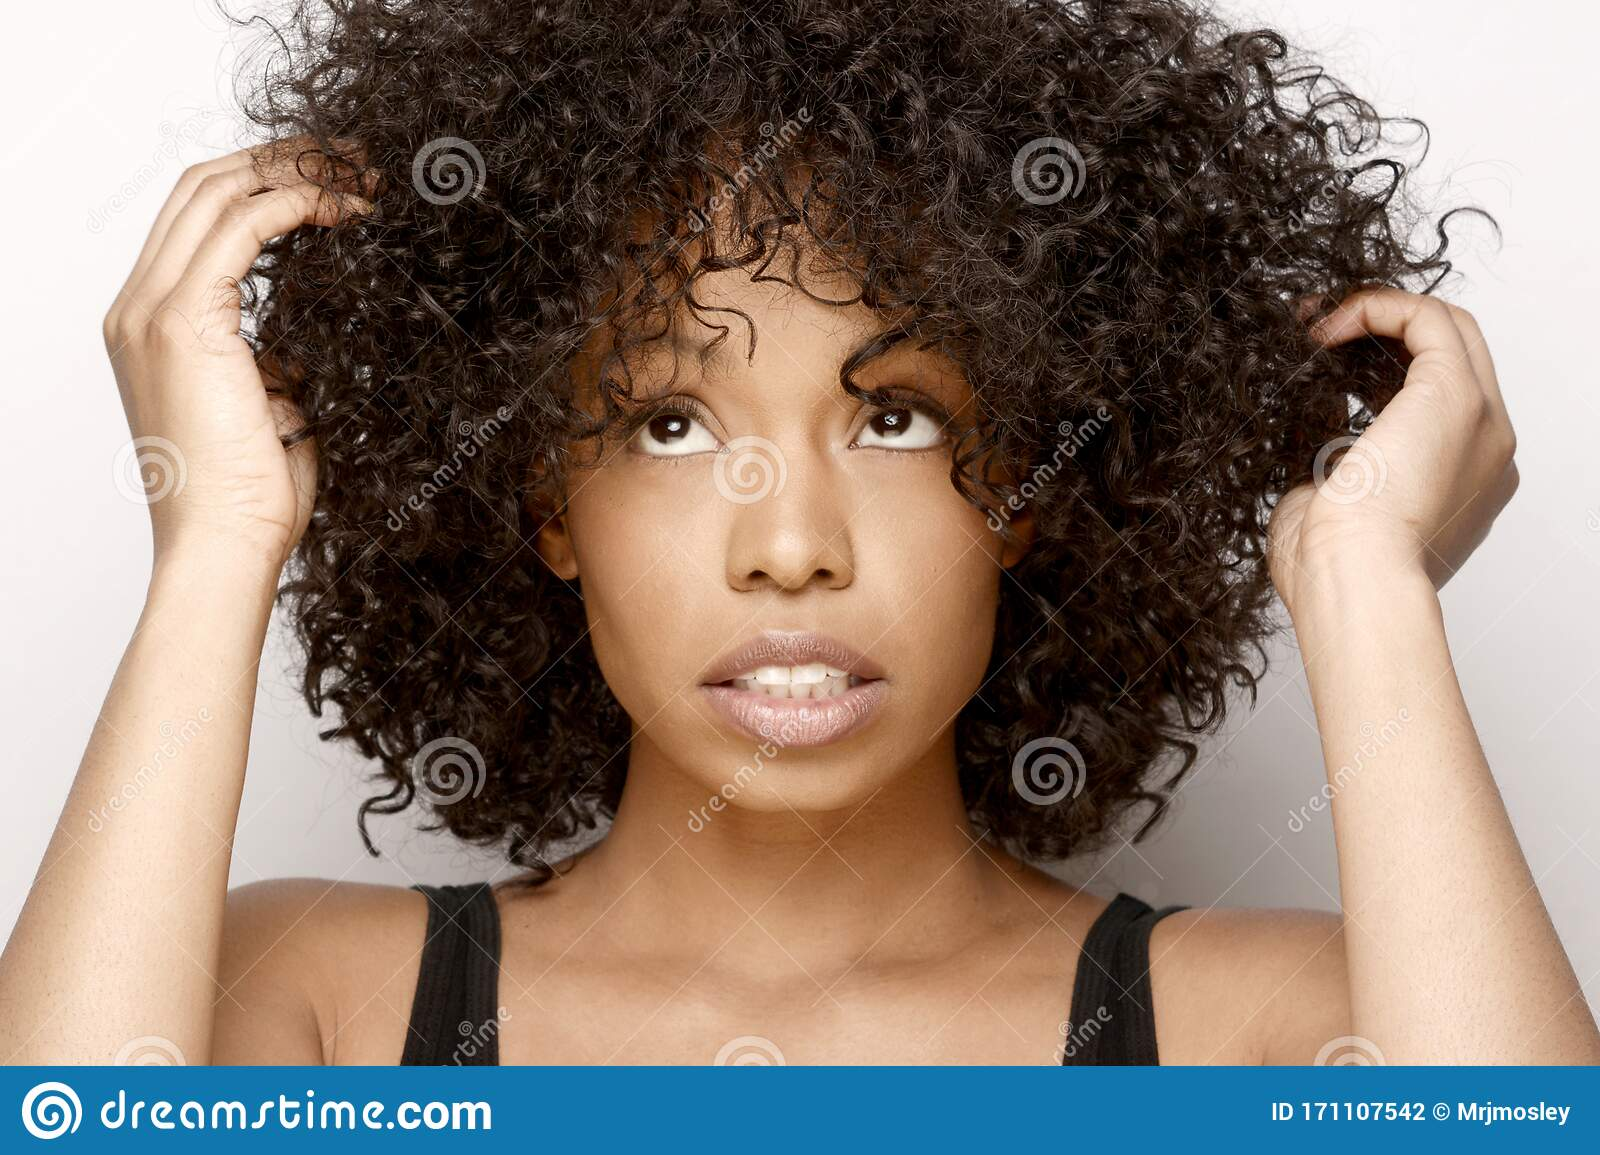 Cute African American Woman In Need Of Some Natural Hair Care